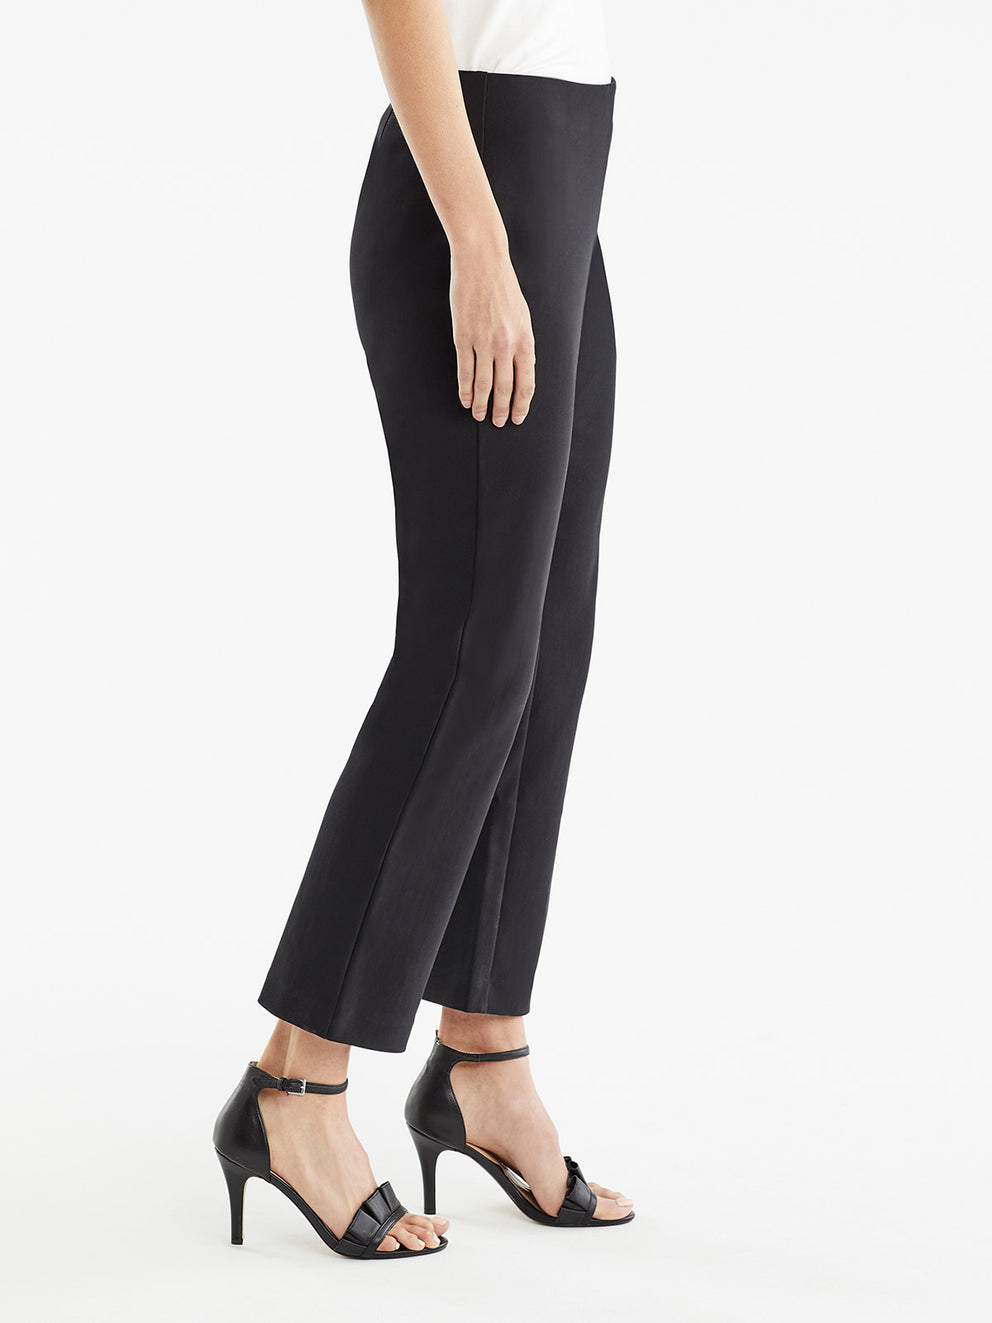 The Jones New York Clean Pull-On Pant, Plus Size in color Black - Image Position 2